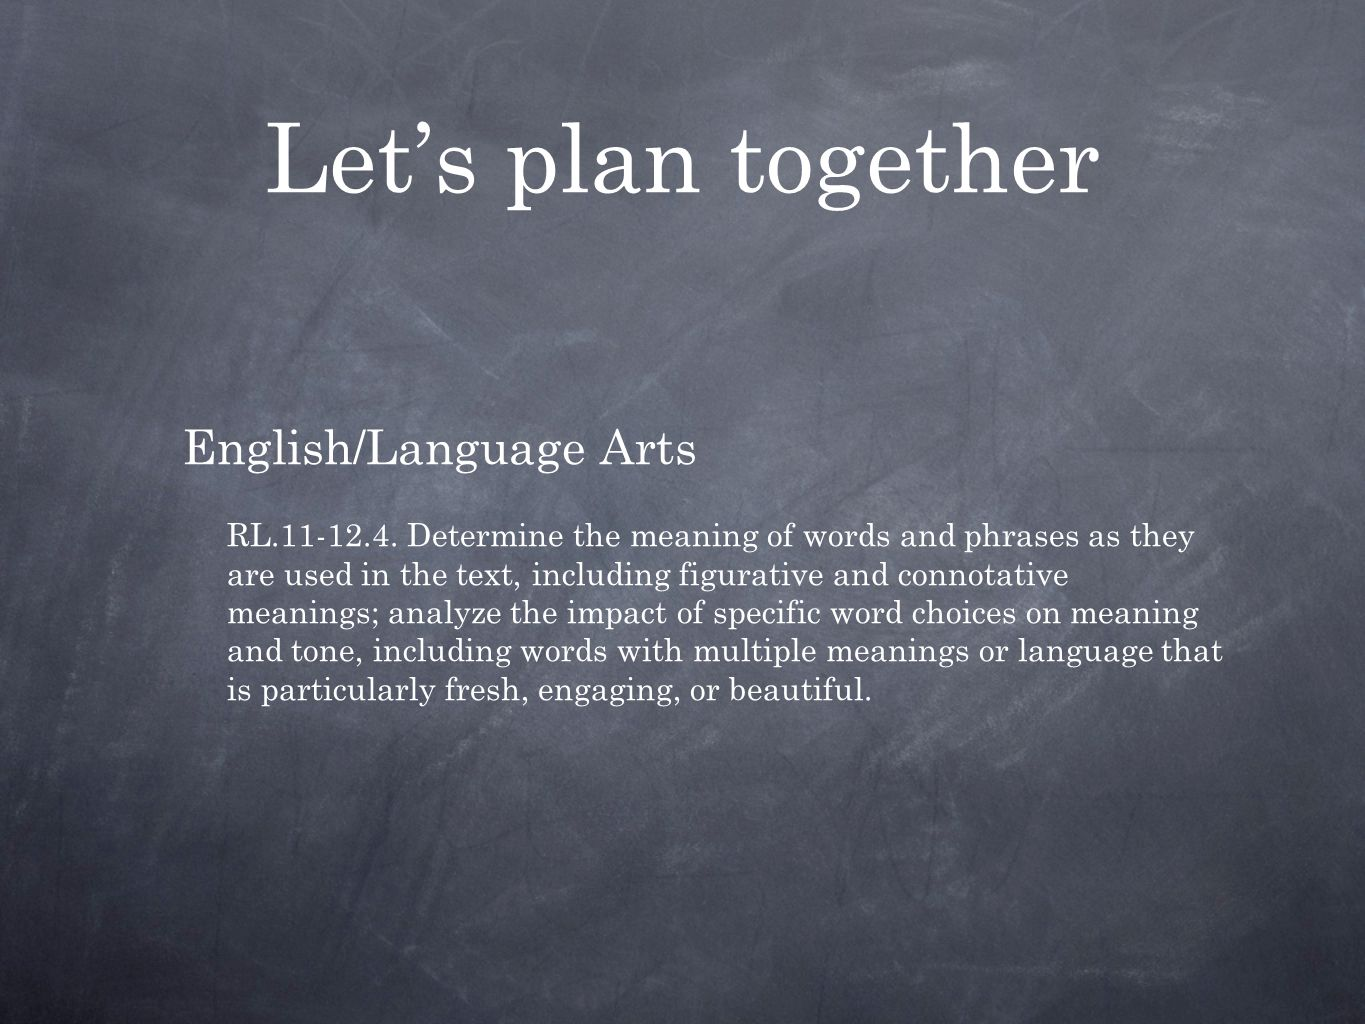 Let's plan together English/Language Arts RL.11-12.4.